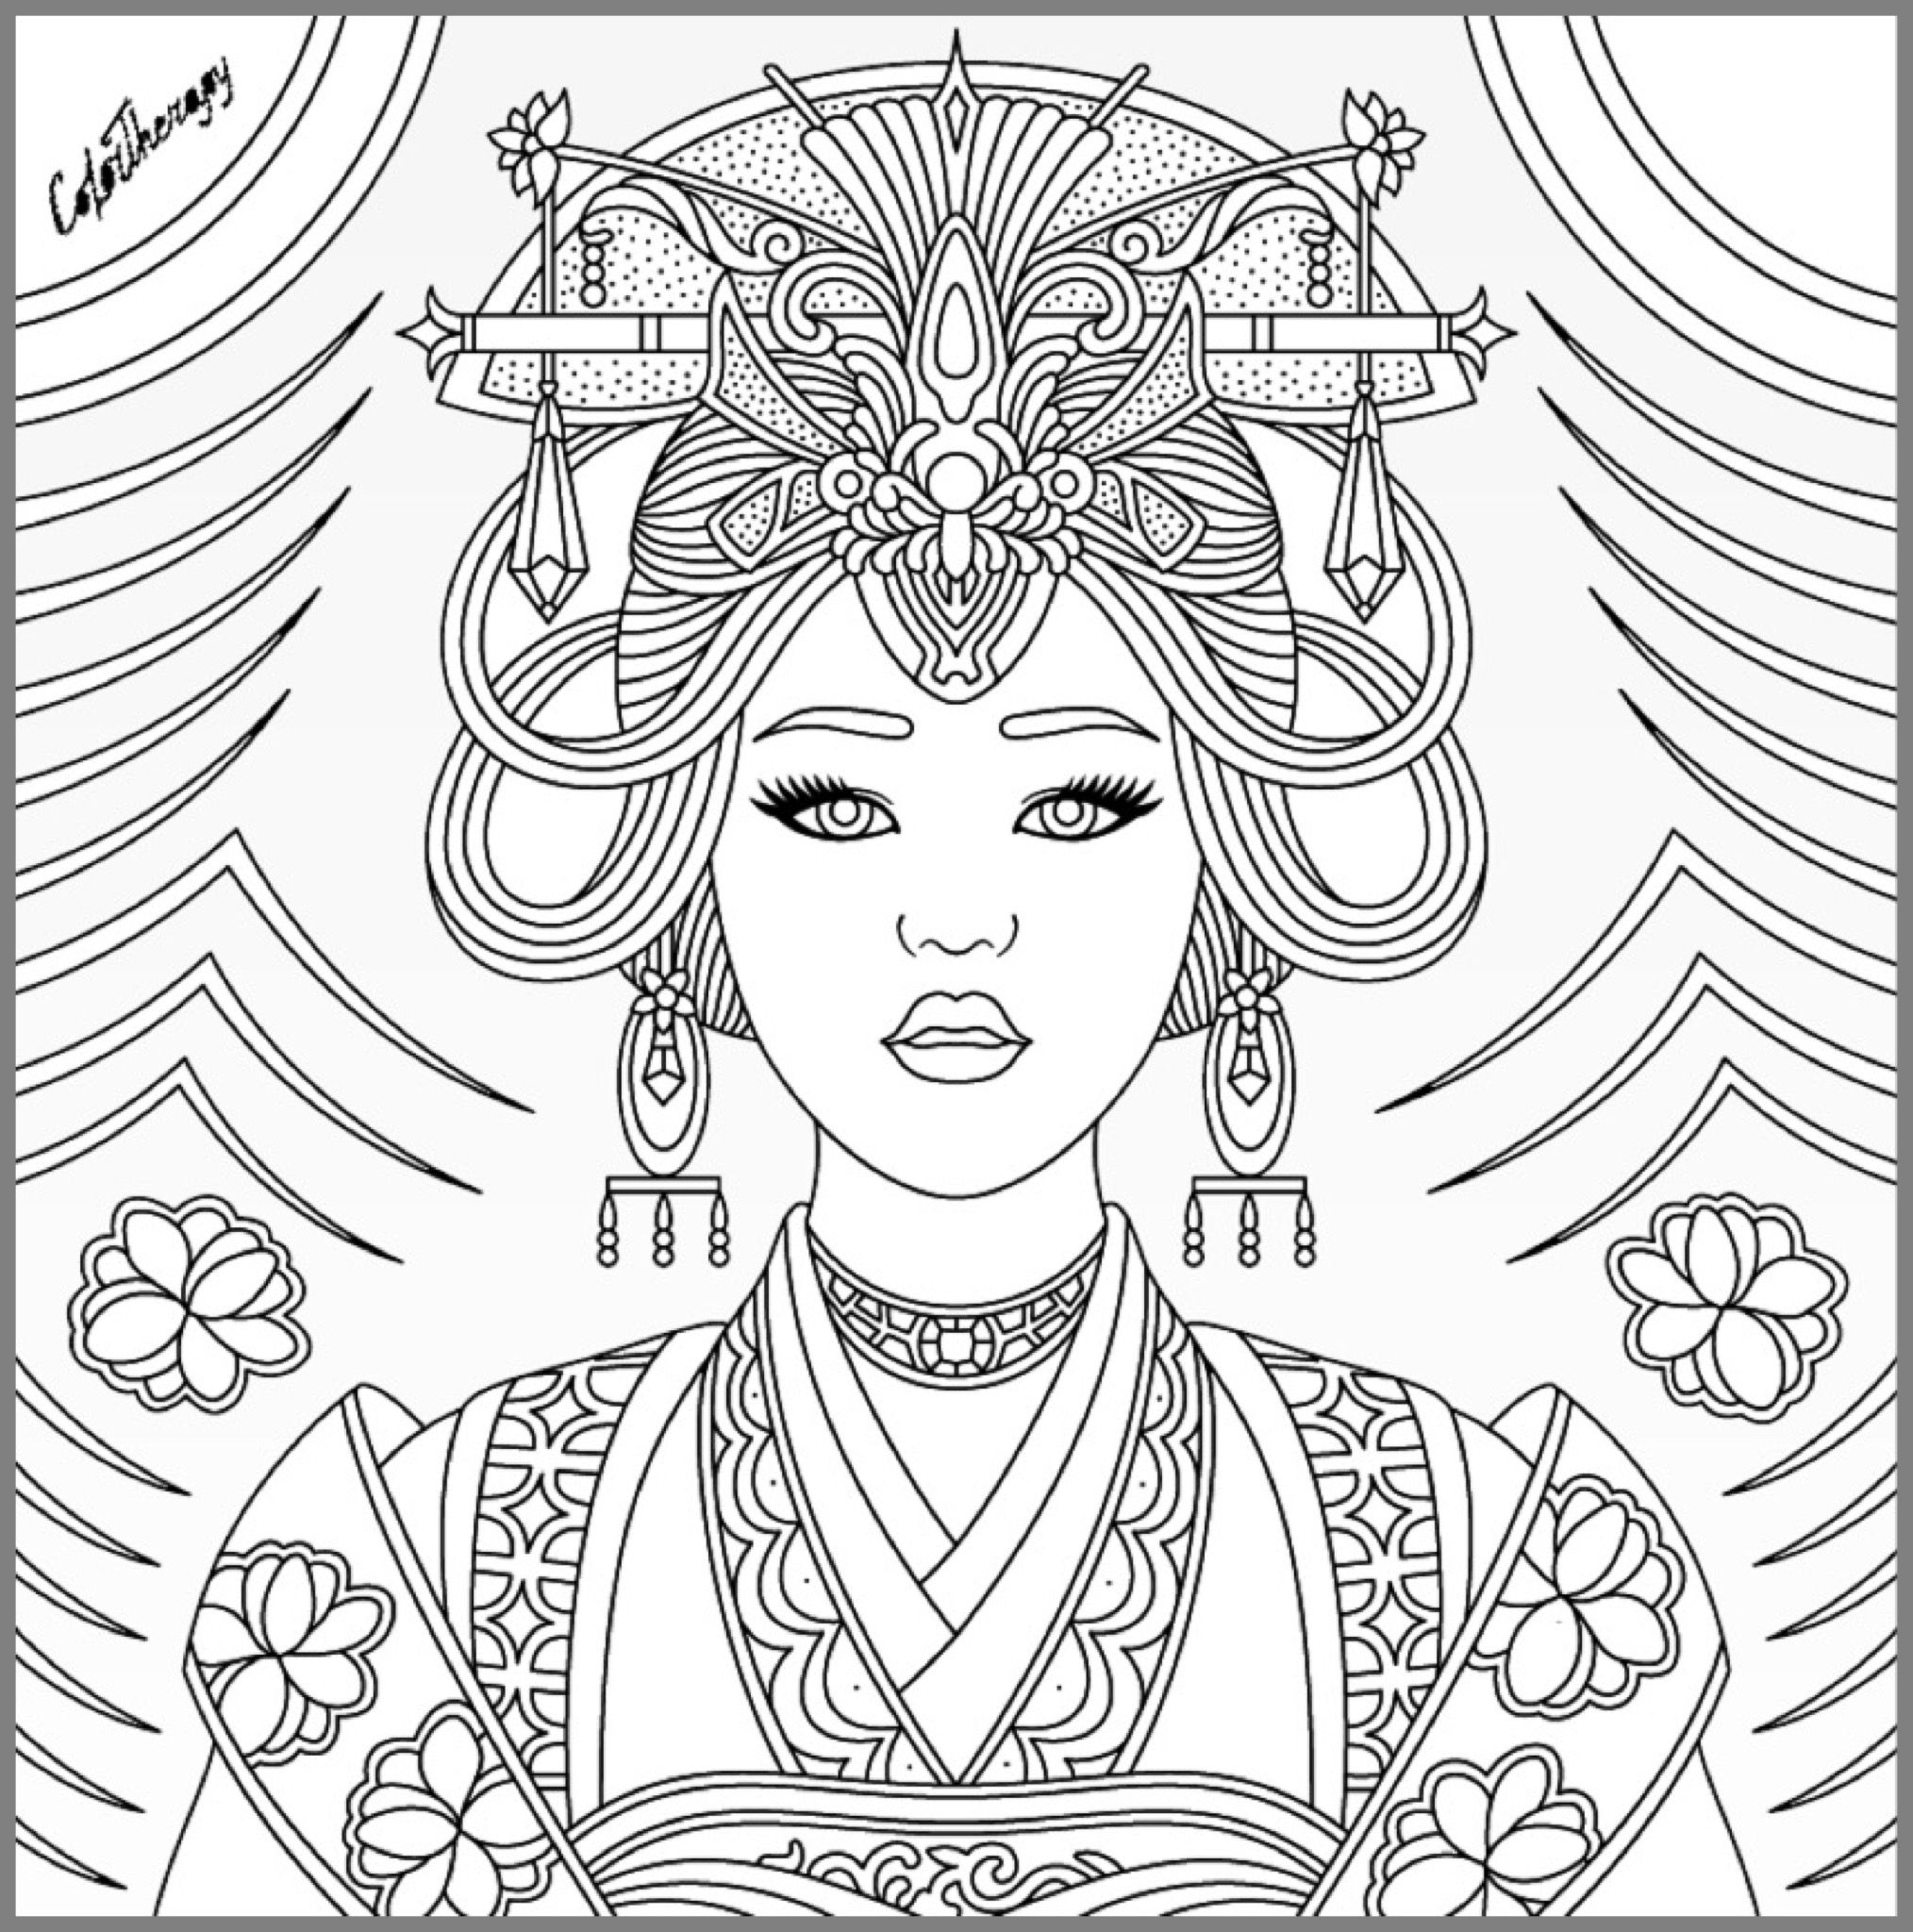 Pin by Val Wilson on Coloring pages | Coloring pages ...